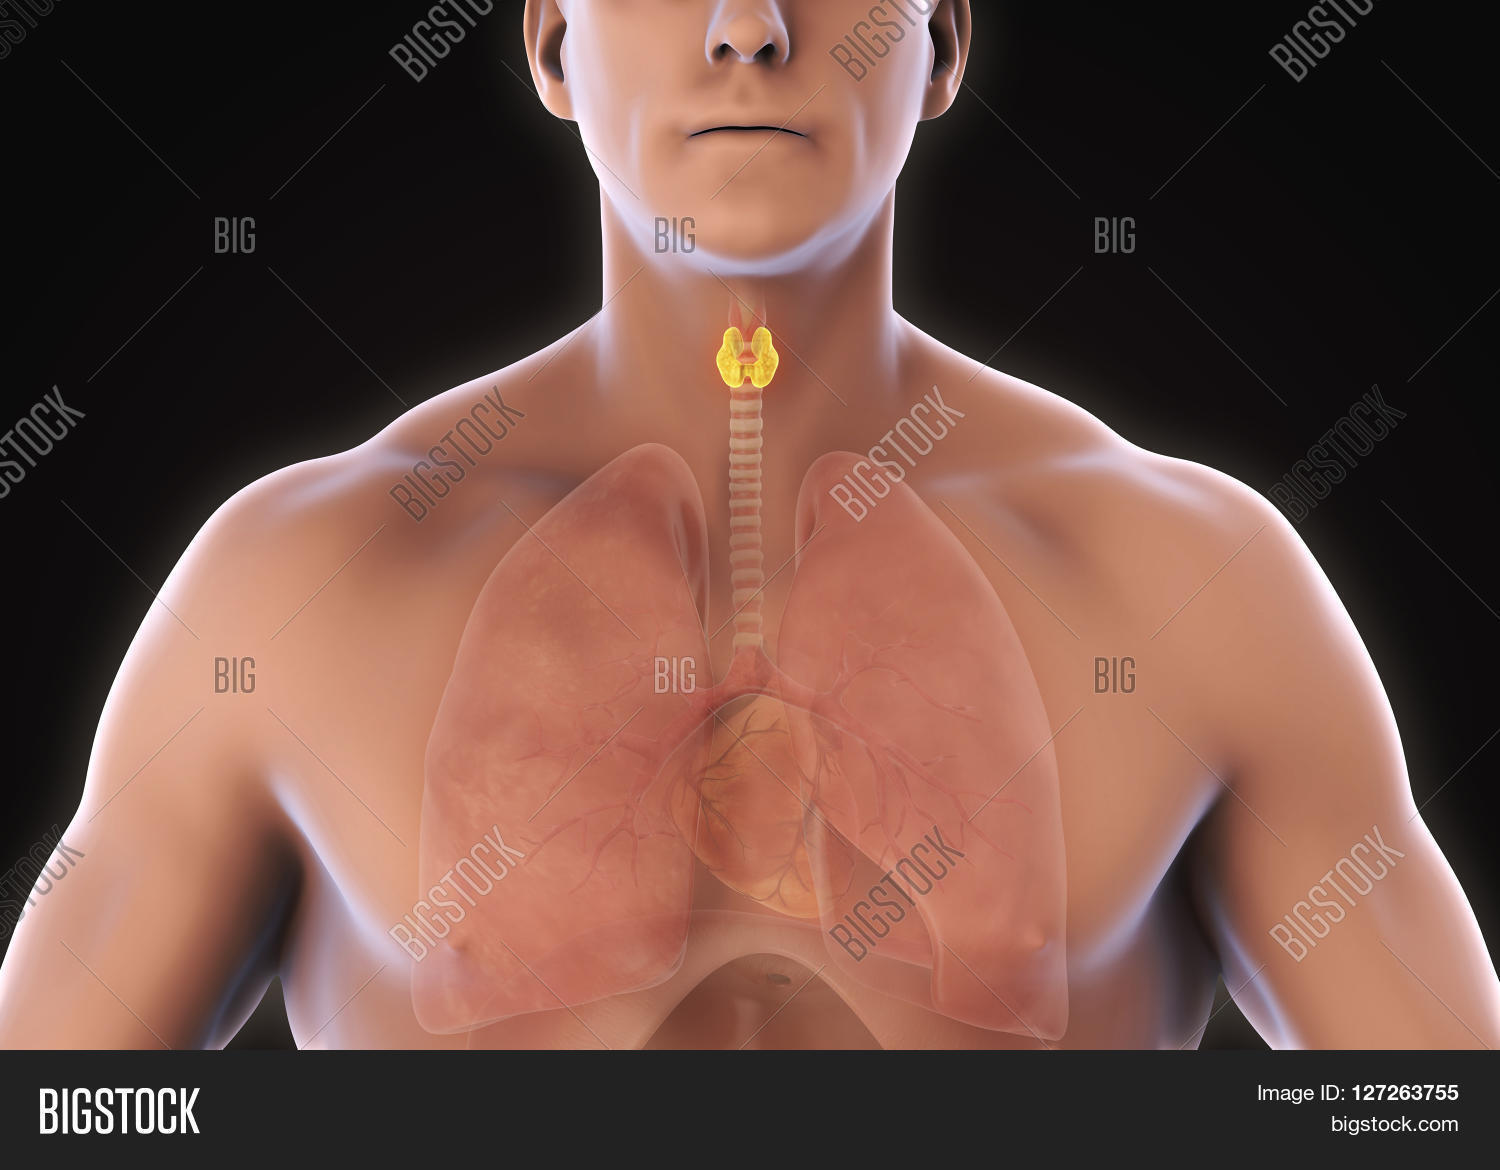 Human Thyroid Gland Image & Photo (Free Trial) | Bigstock